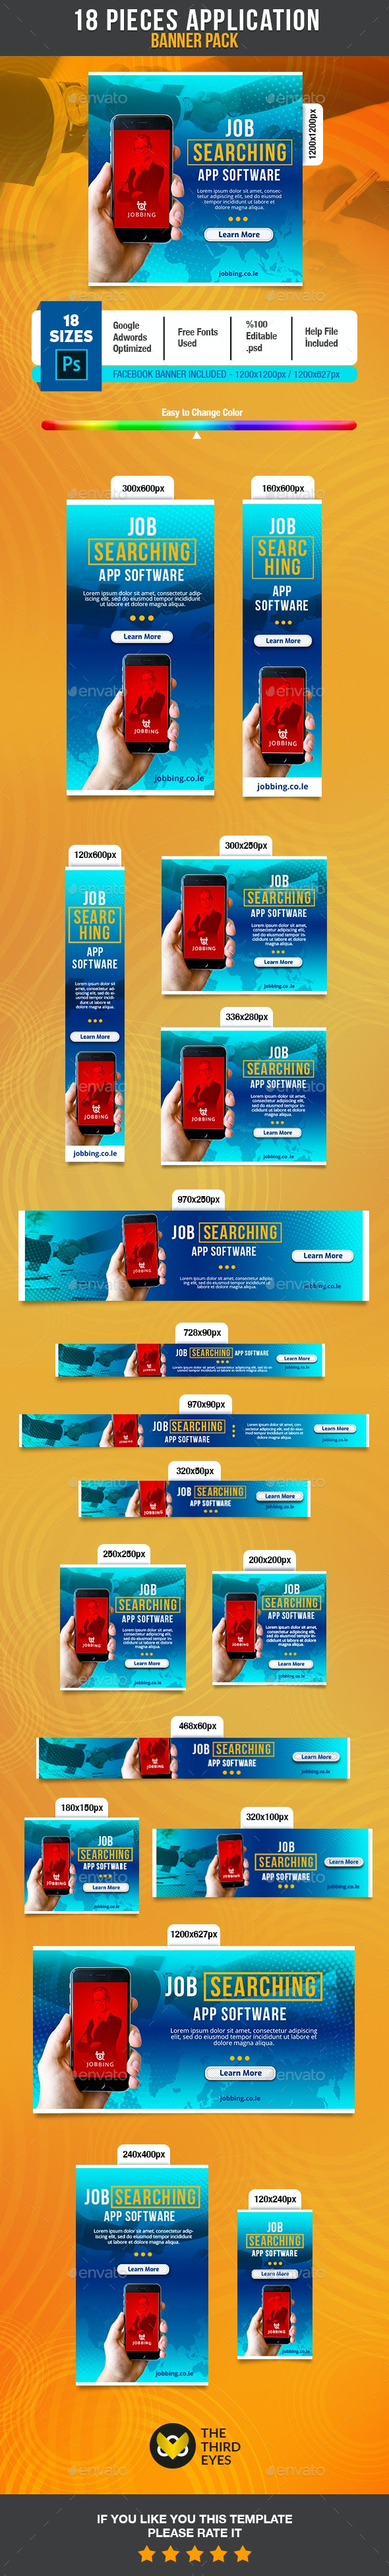 Business Application Banner - Banners & Ads Web Elements